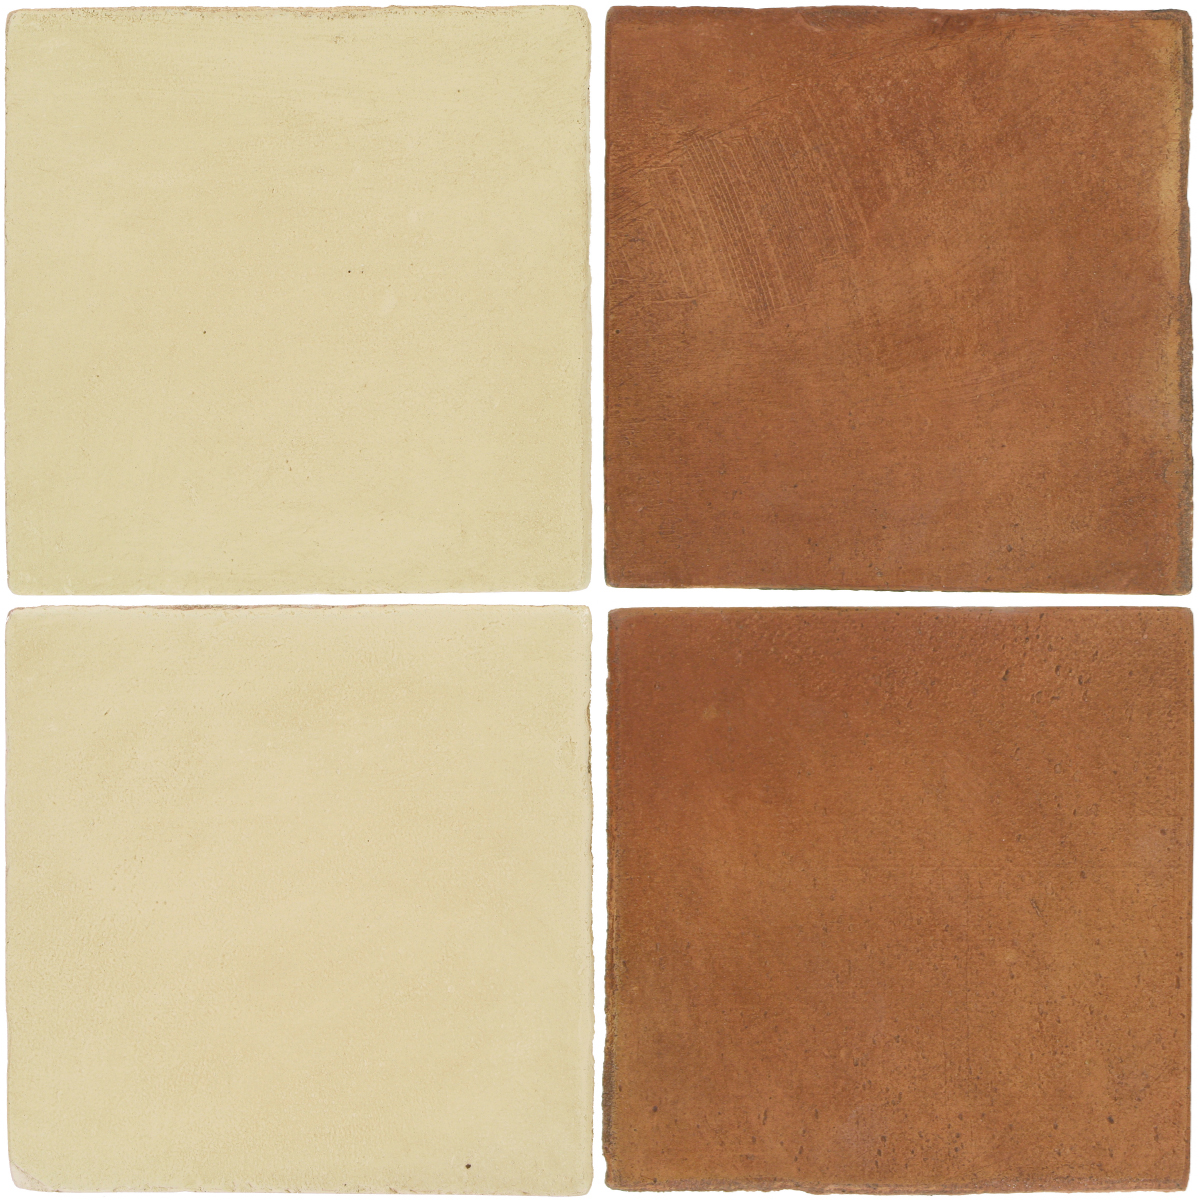 Pedralbes Antique Terracotta  2 Color Combinations  OHS-PGPW Pergamino White + OHS-PSTR Traditional